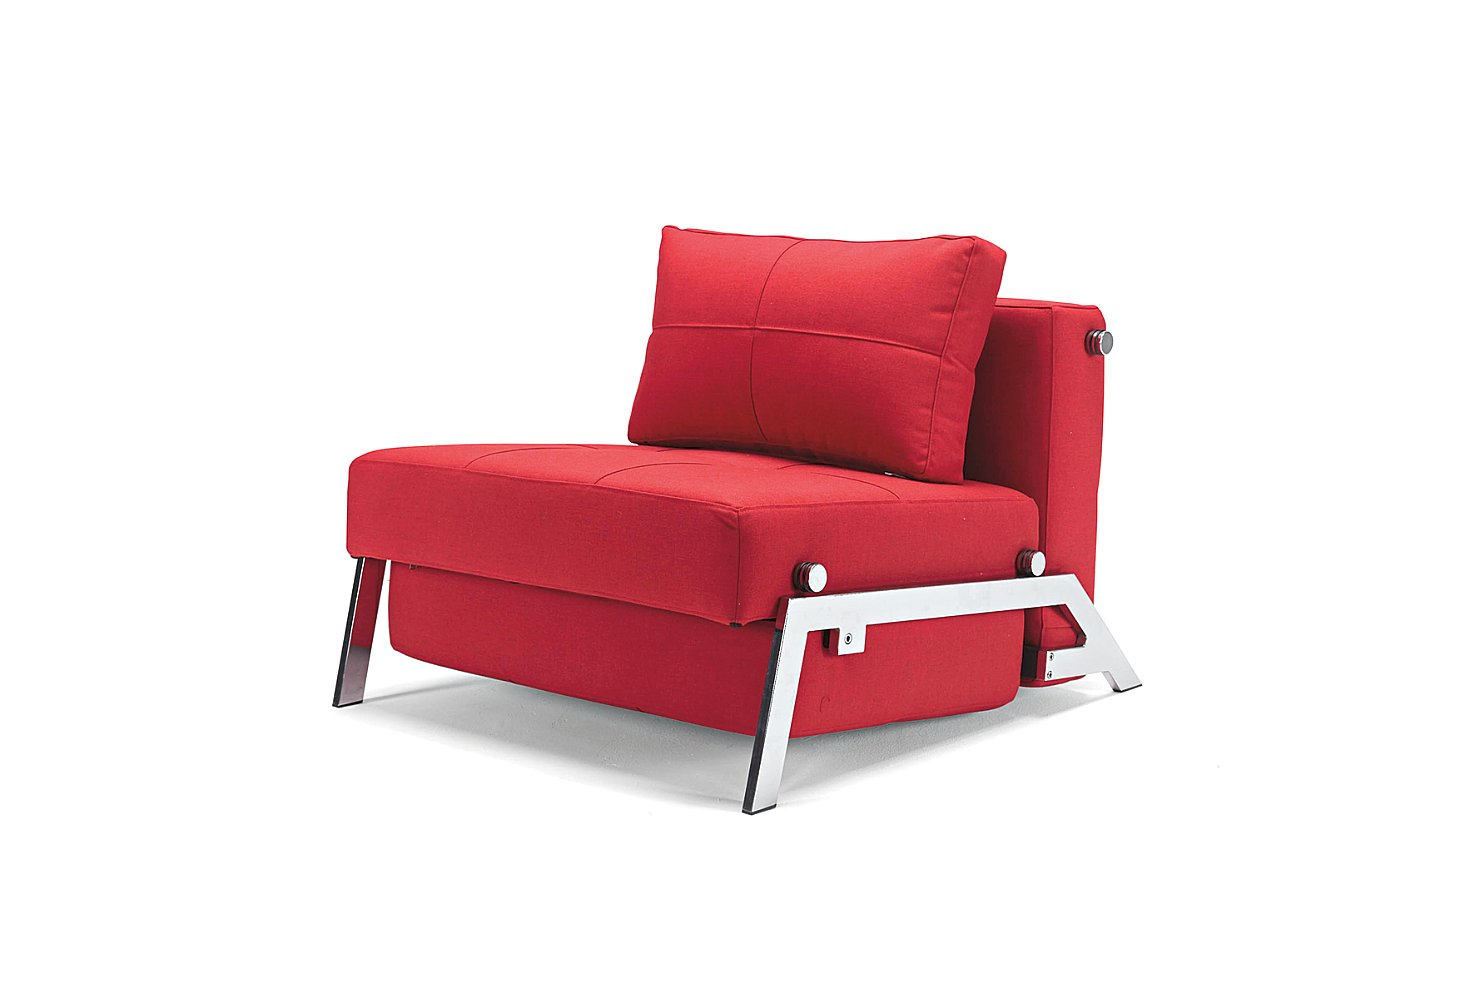 sleeper chair bed inspiring red single sleeper chair with steel frame and comfortable big cushion for comfortable living room